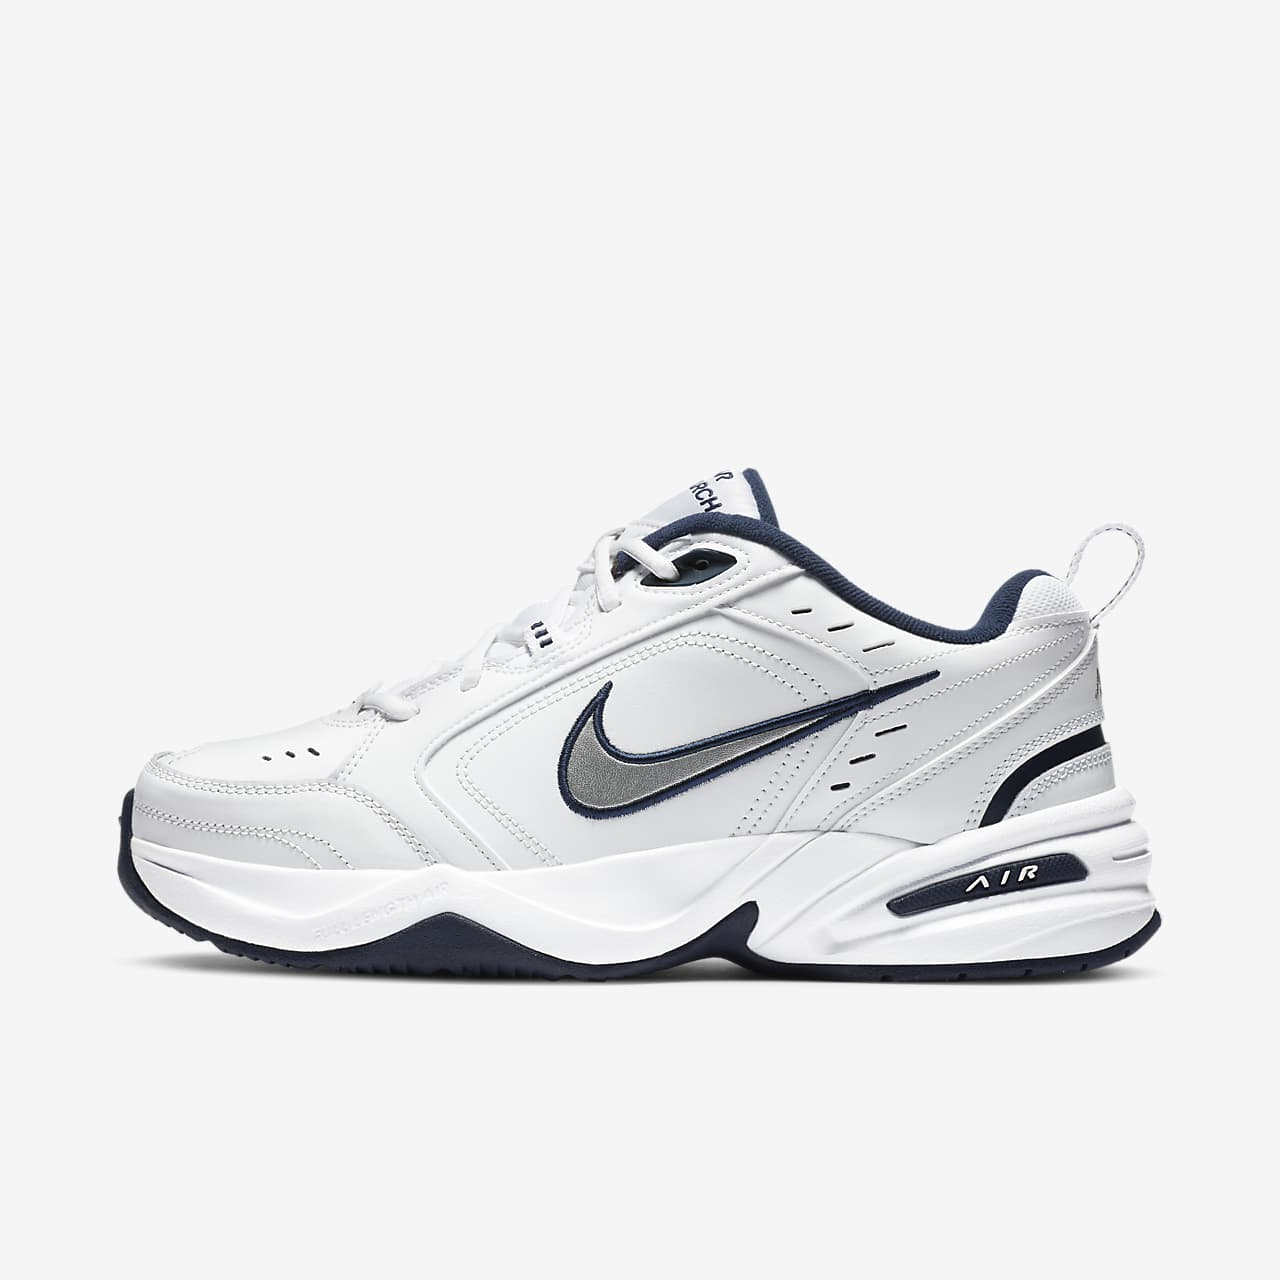 premium selection c9c0f 637ff Nike Air Monarch IV